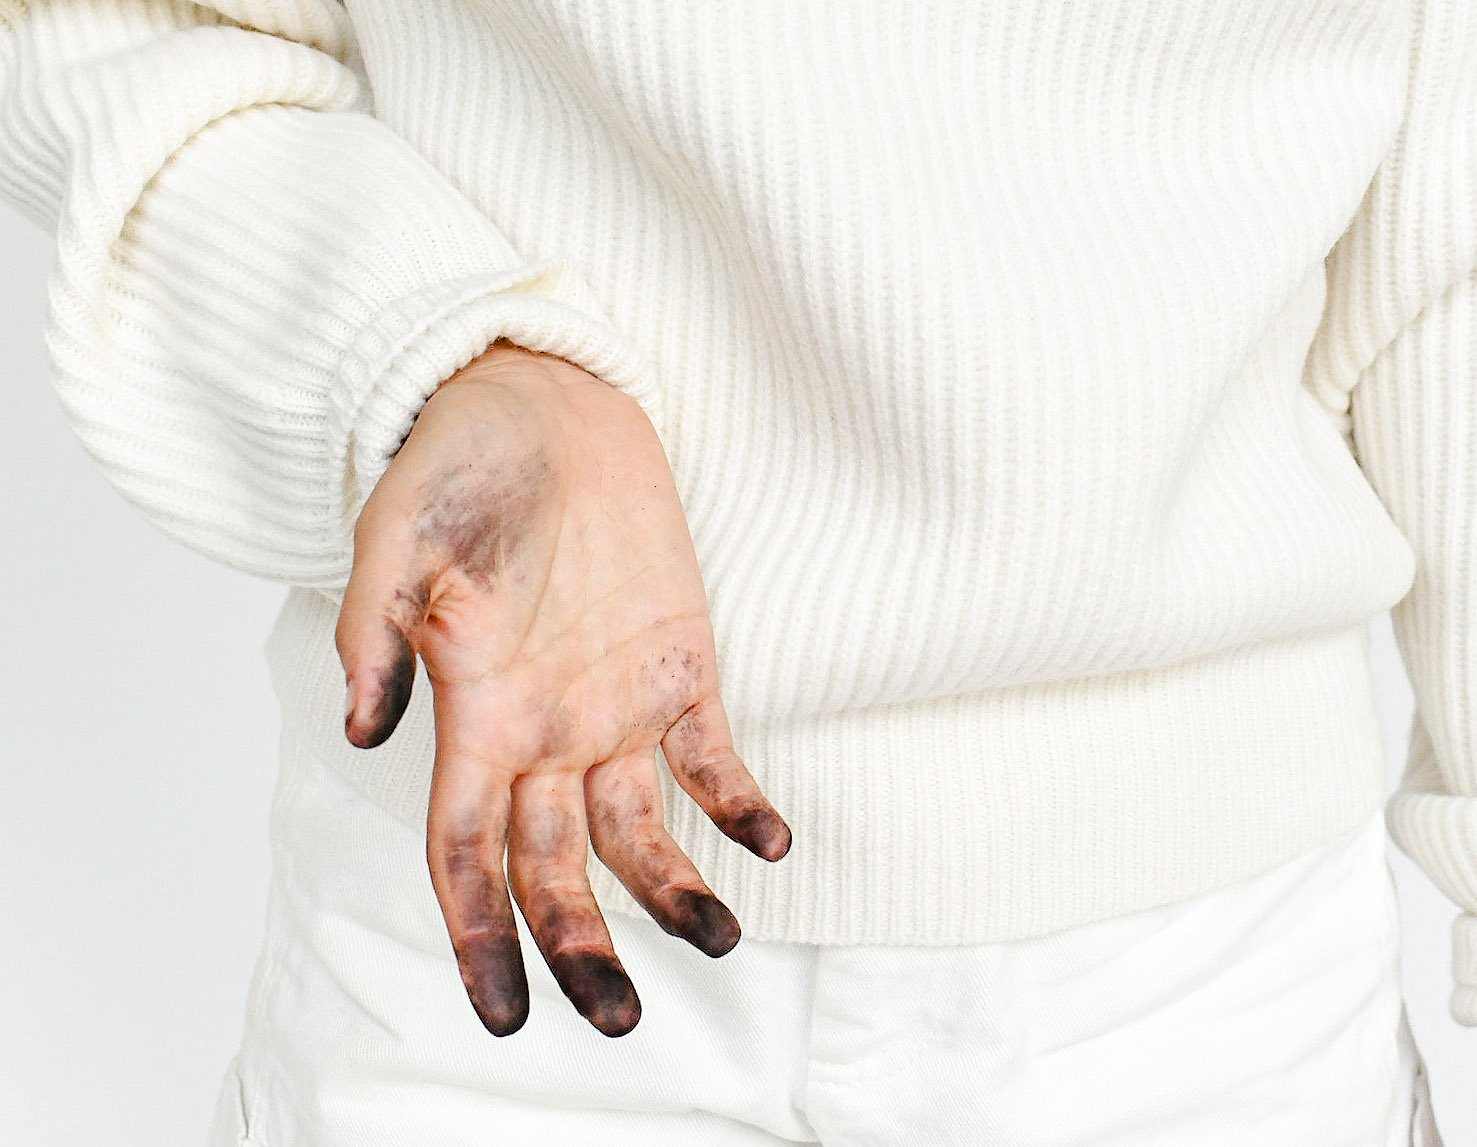 Close up of a person in white clothing revealing dark stains on their hand and fingertips.